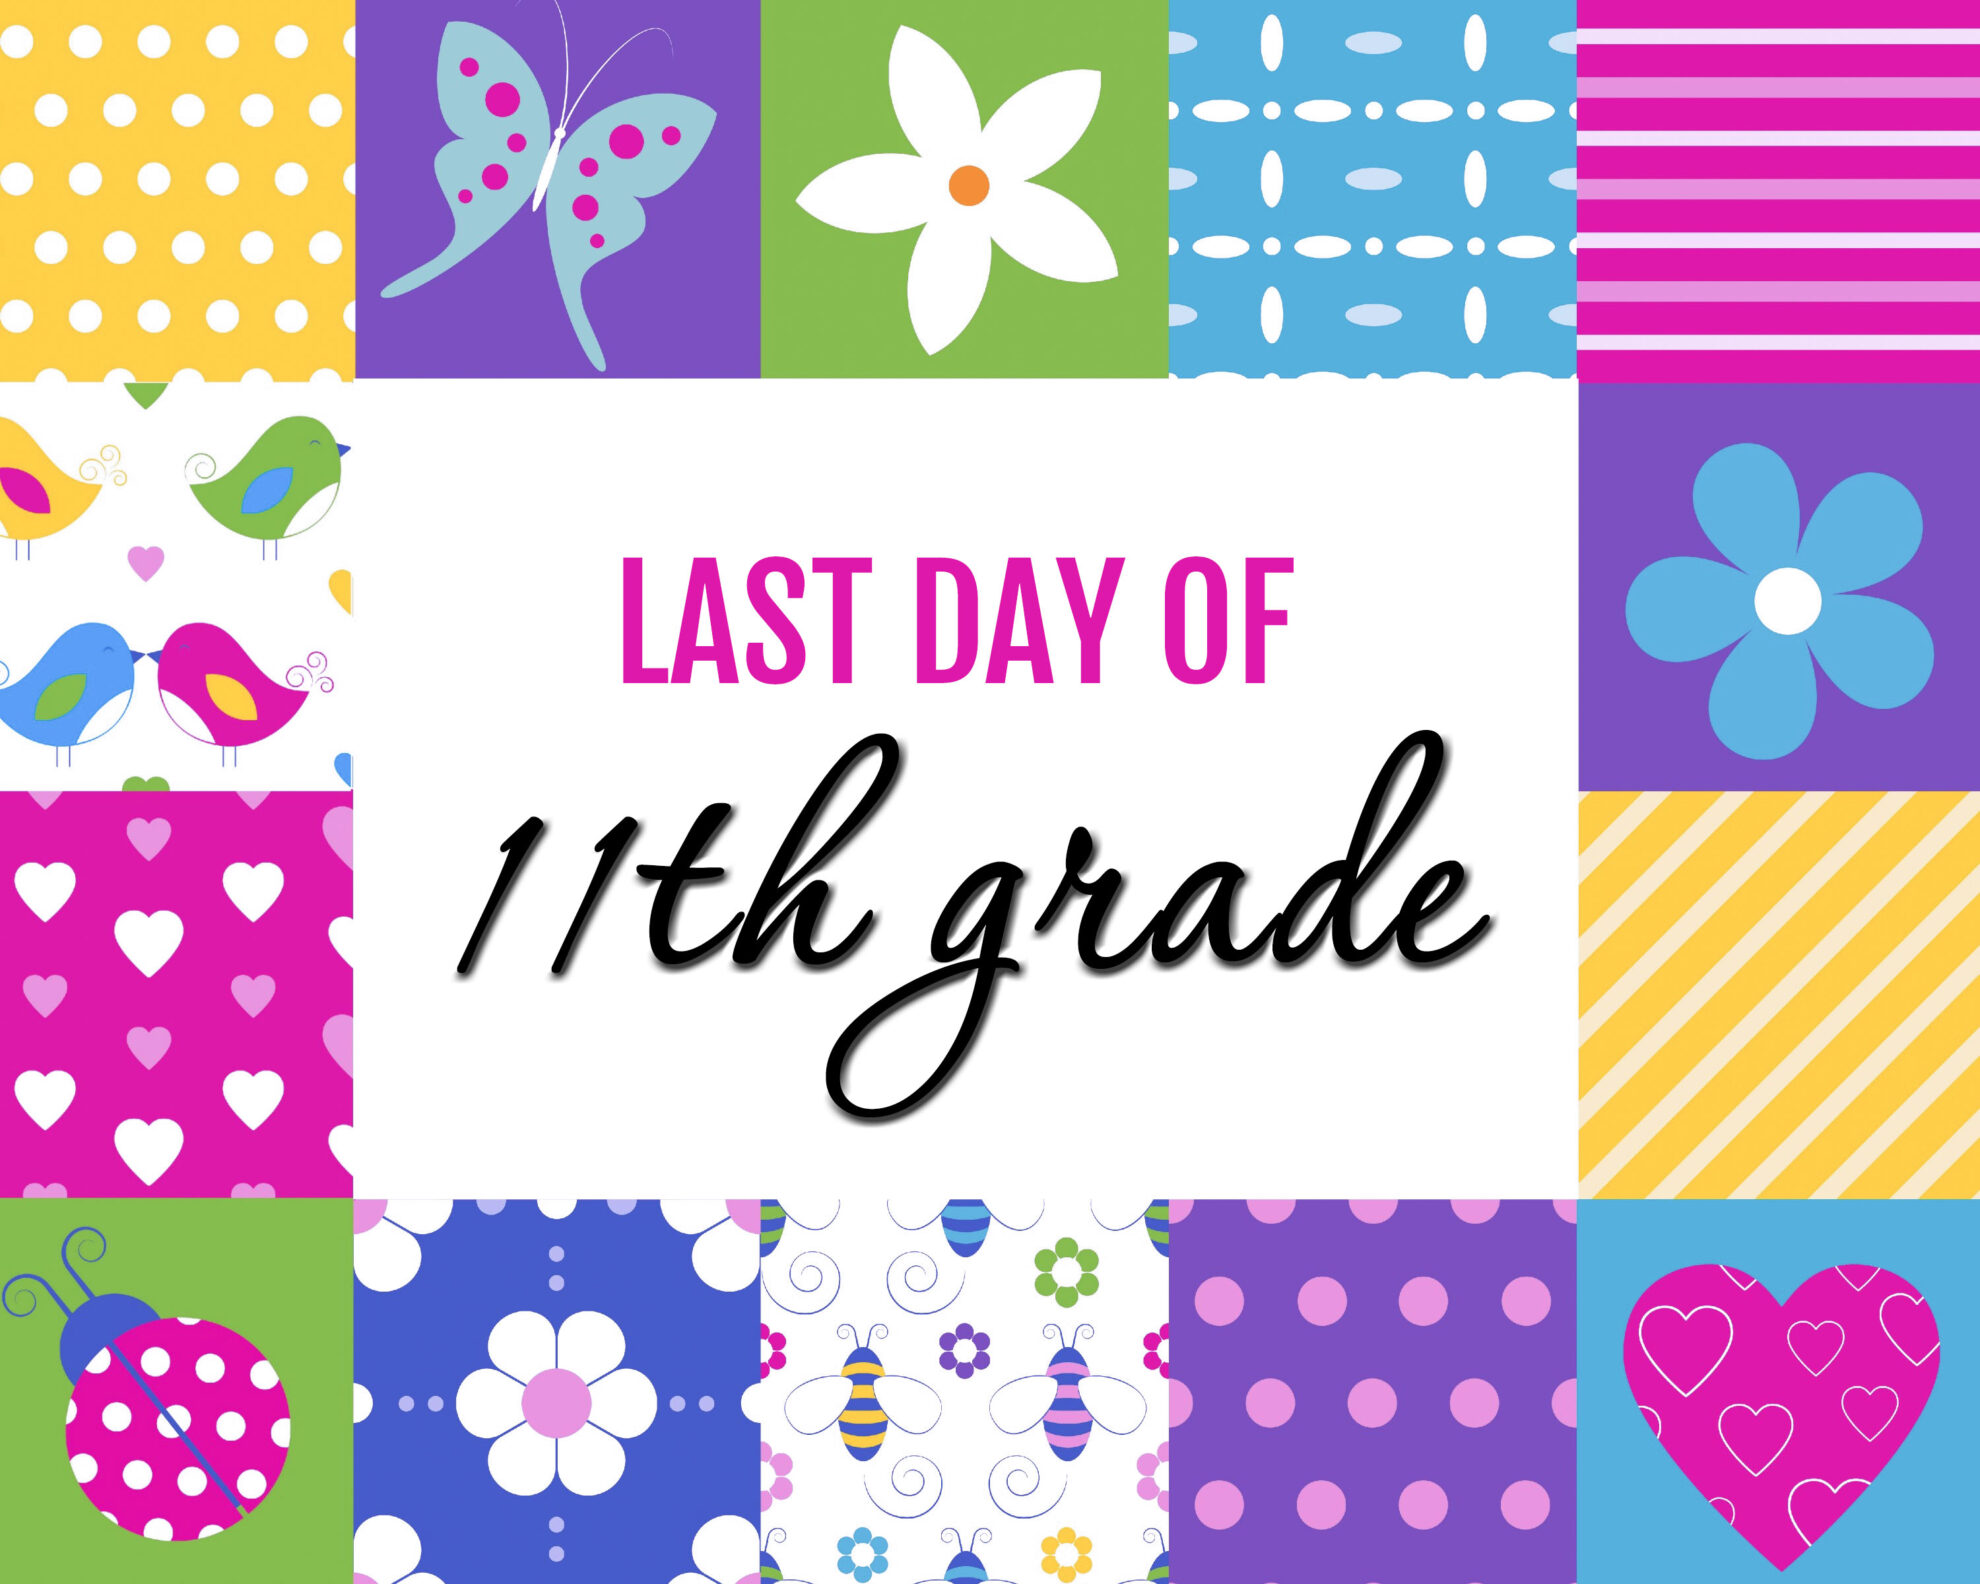 Colorful Girl Last Day of 11th grade Free Printable